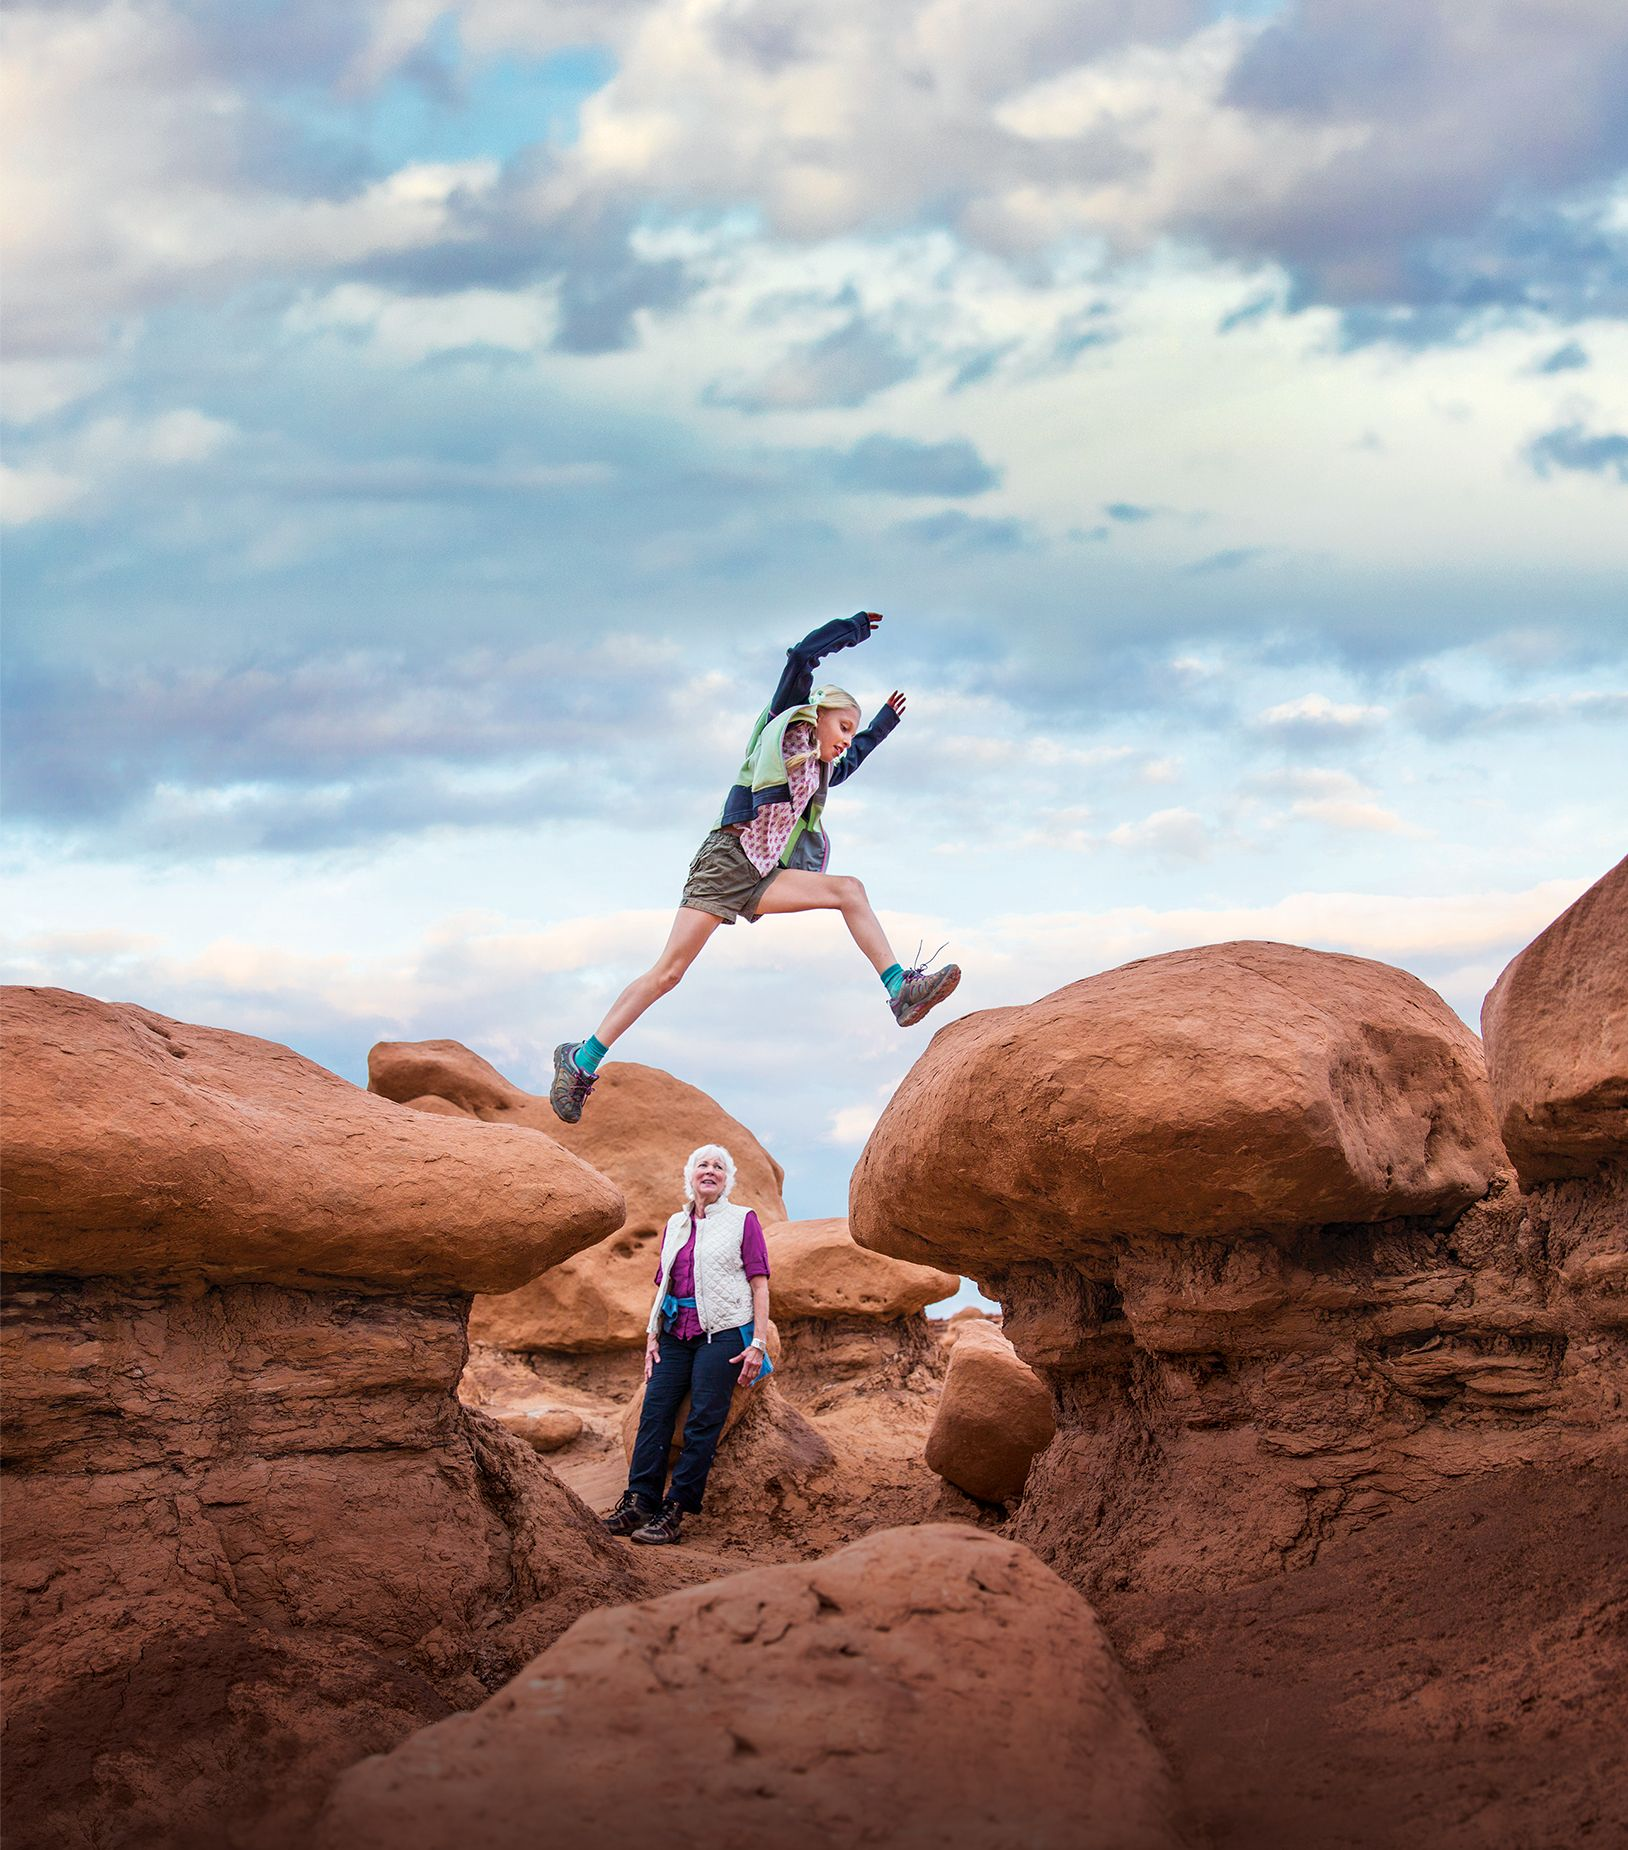 A photo of a young girl jumping from rock to rock